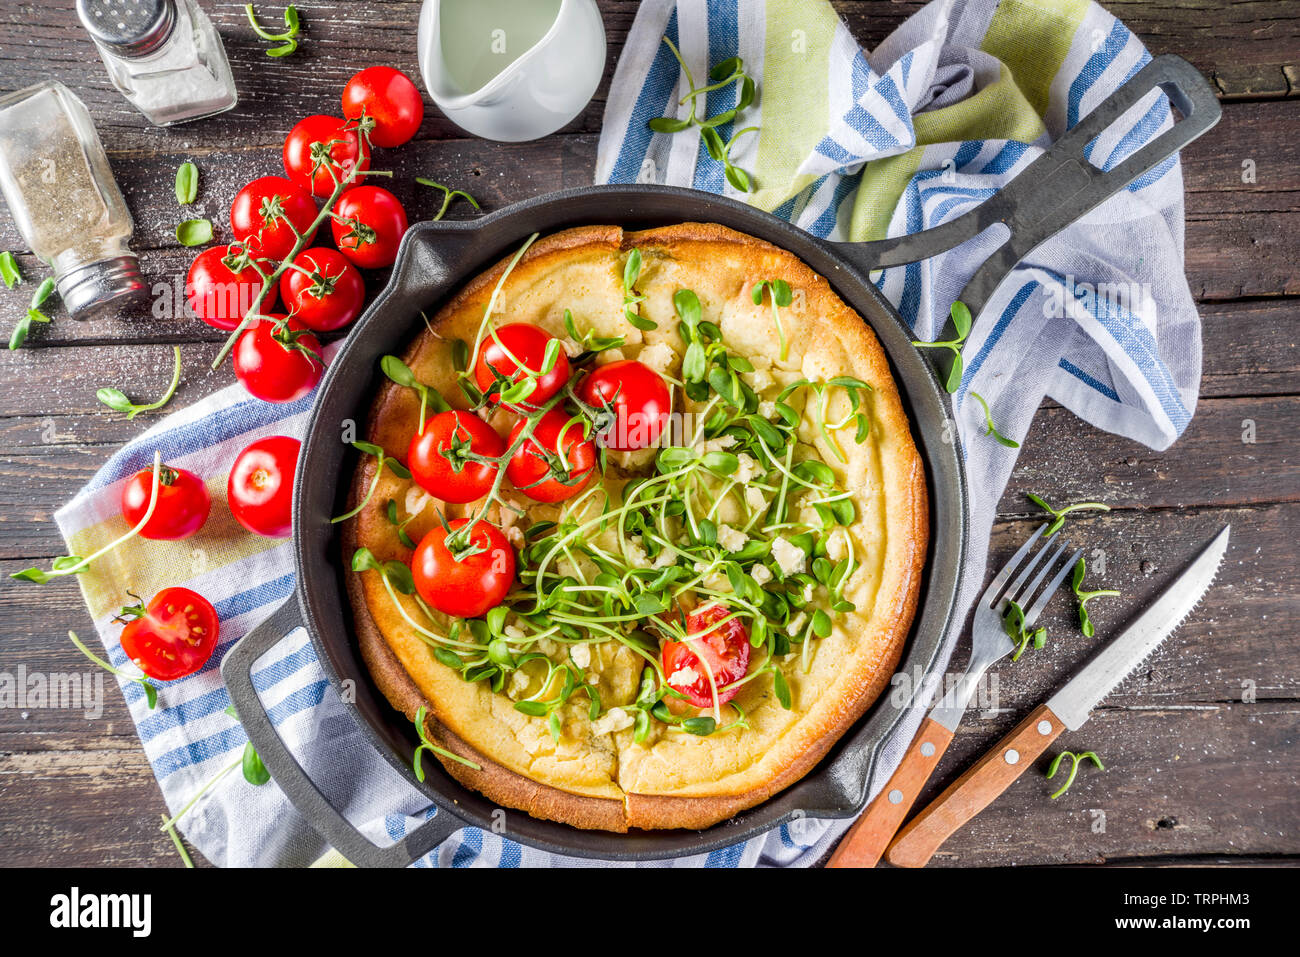 Savory vegan dutch baby baked pancake with salad leaves and vegetables, wooden background copy space - Stock Image